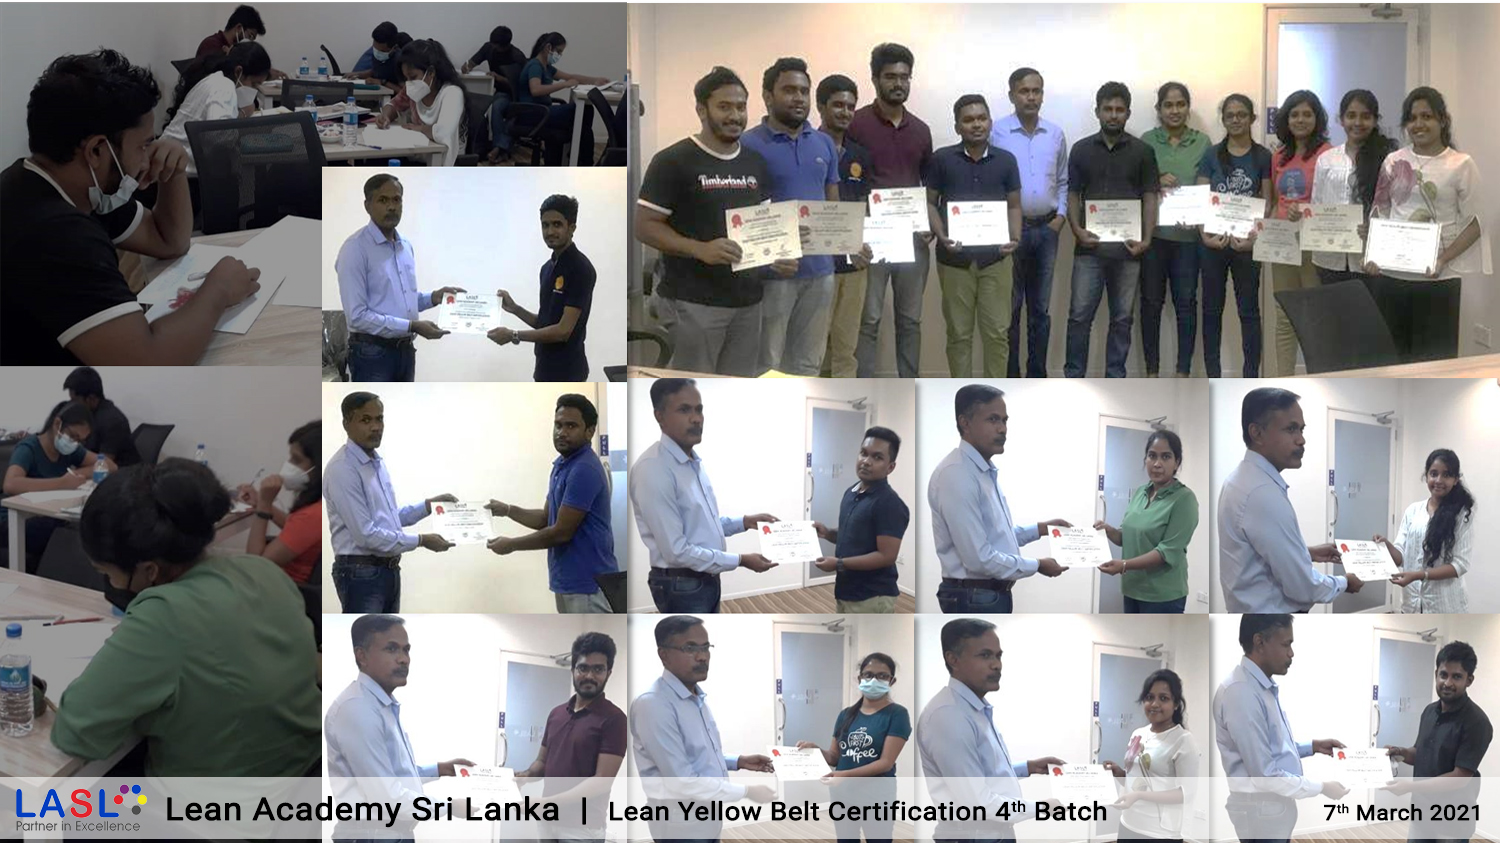 Lean Yellow Belt Certification 4th program